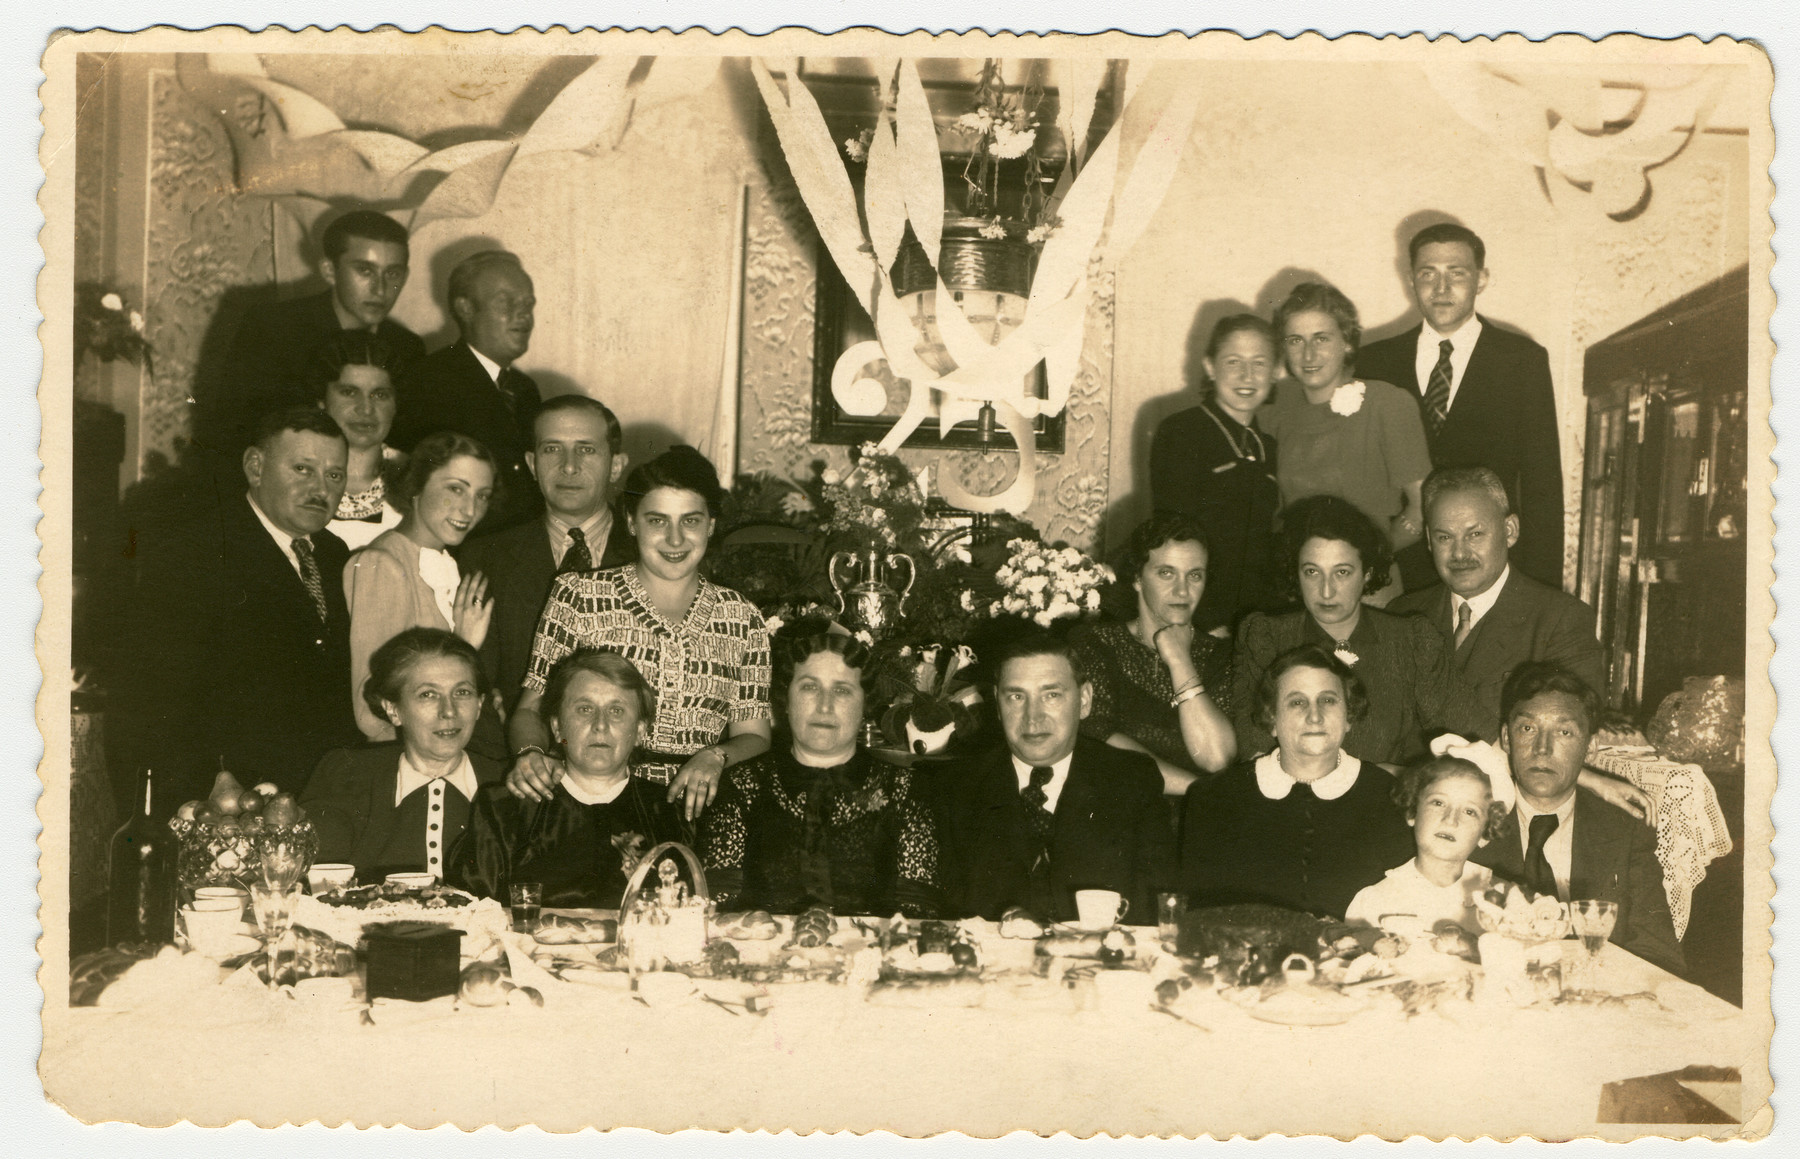 Portrait of the family of a Hungarian-Jewish family in Slovakia and sent to their sister-in-law in Budapest.  Dezso Stern and his wife are seated in the center.  All but two of those pictured perished in the Holocaust.